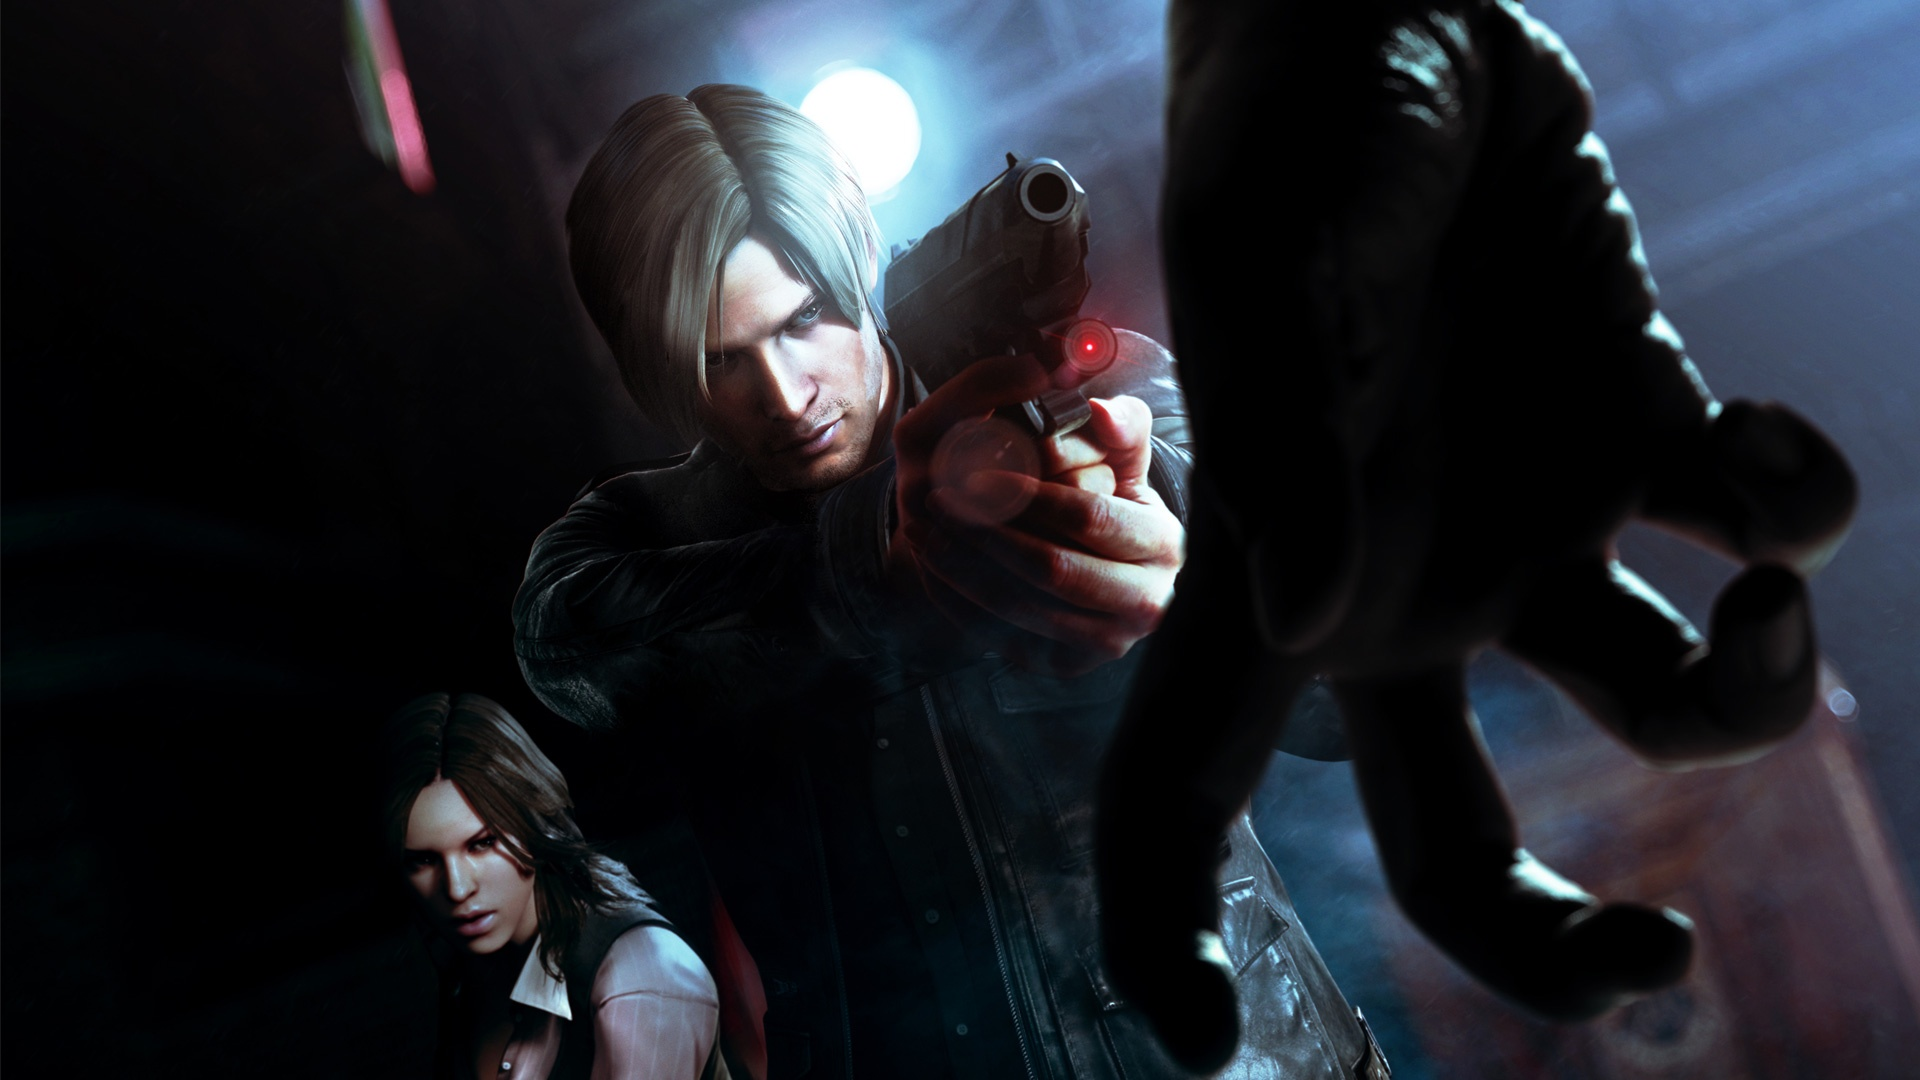 Wallpaper Resident Evil 6 1920x1080 Full Hd 2k Picture Image